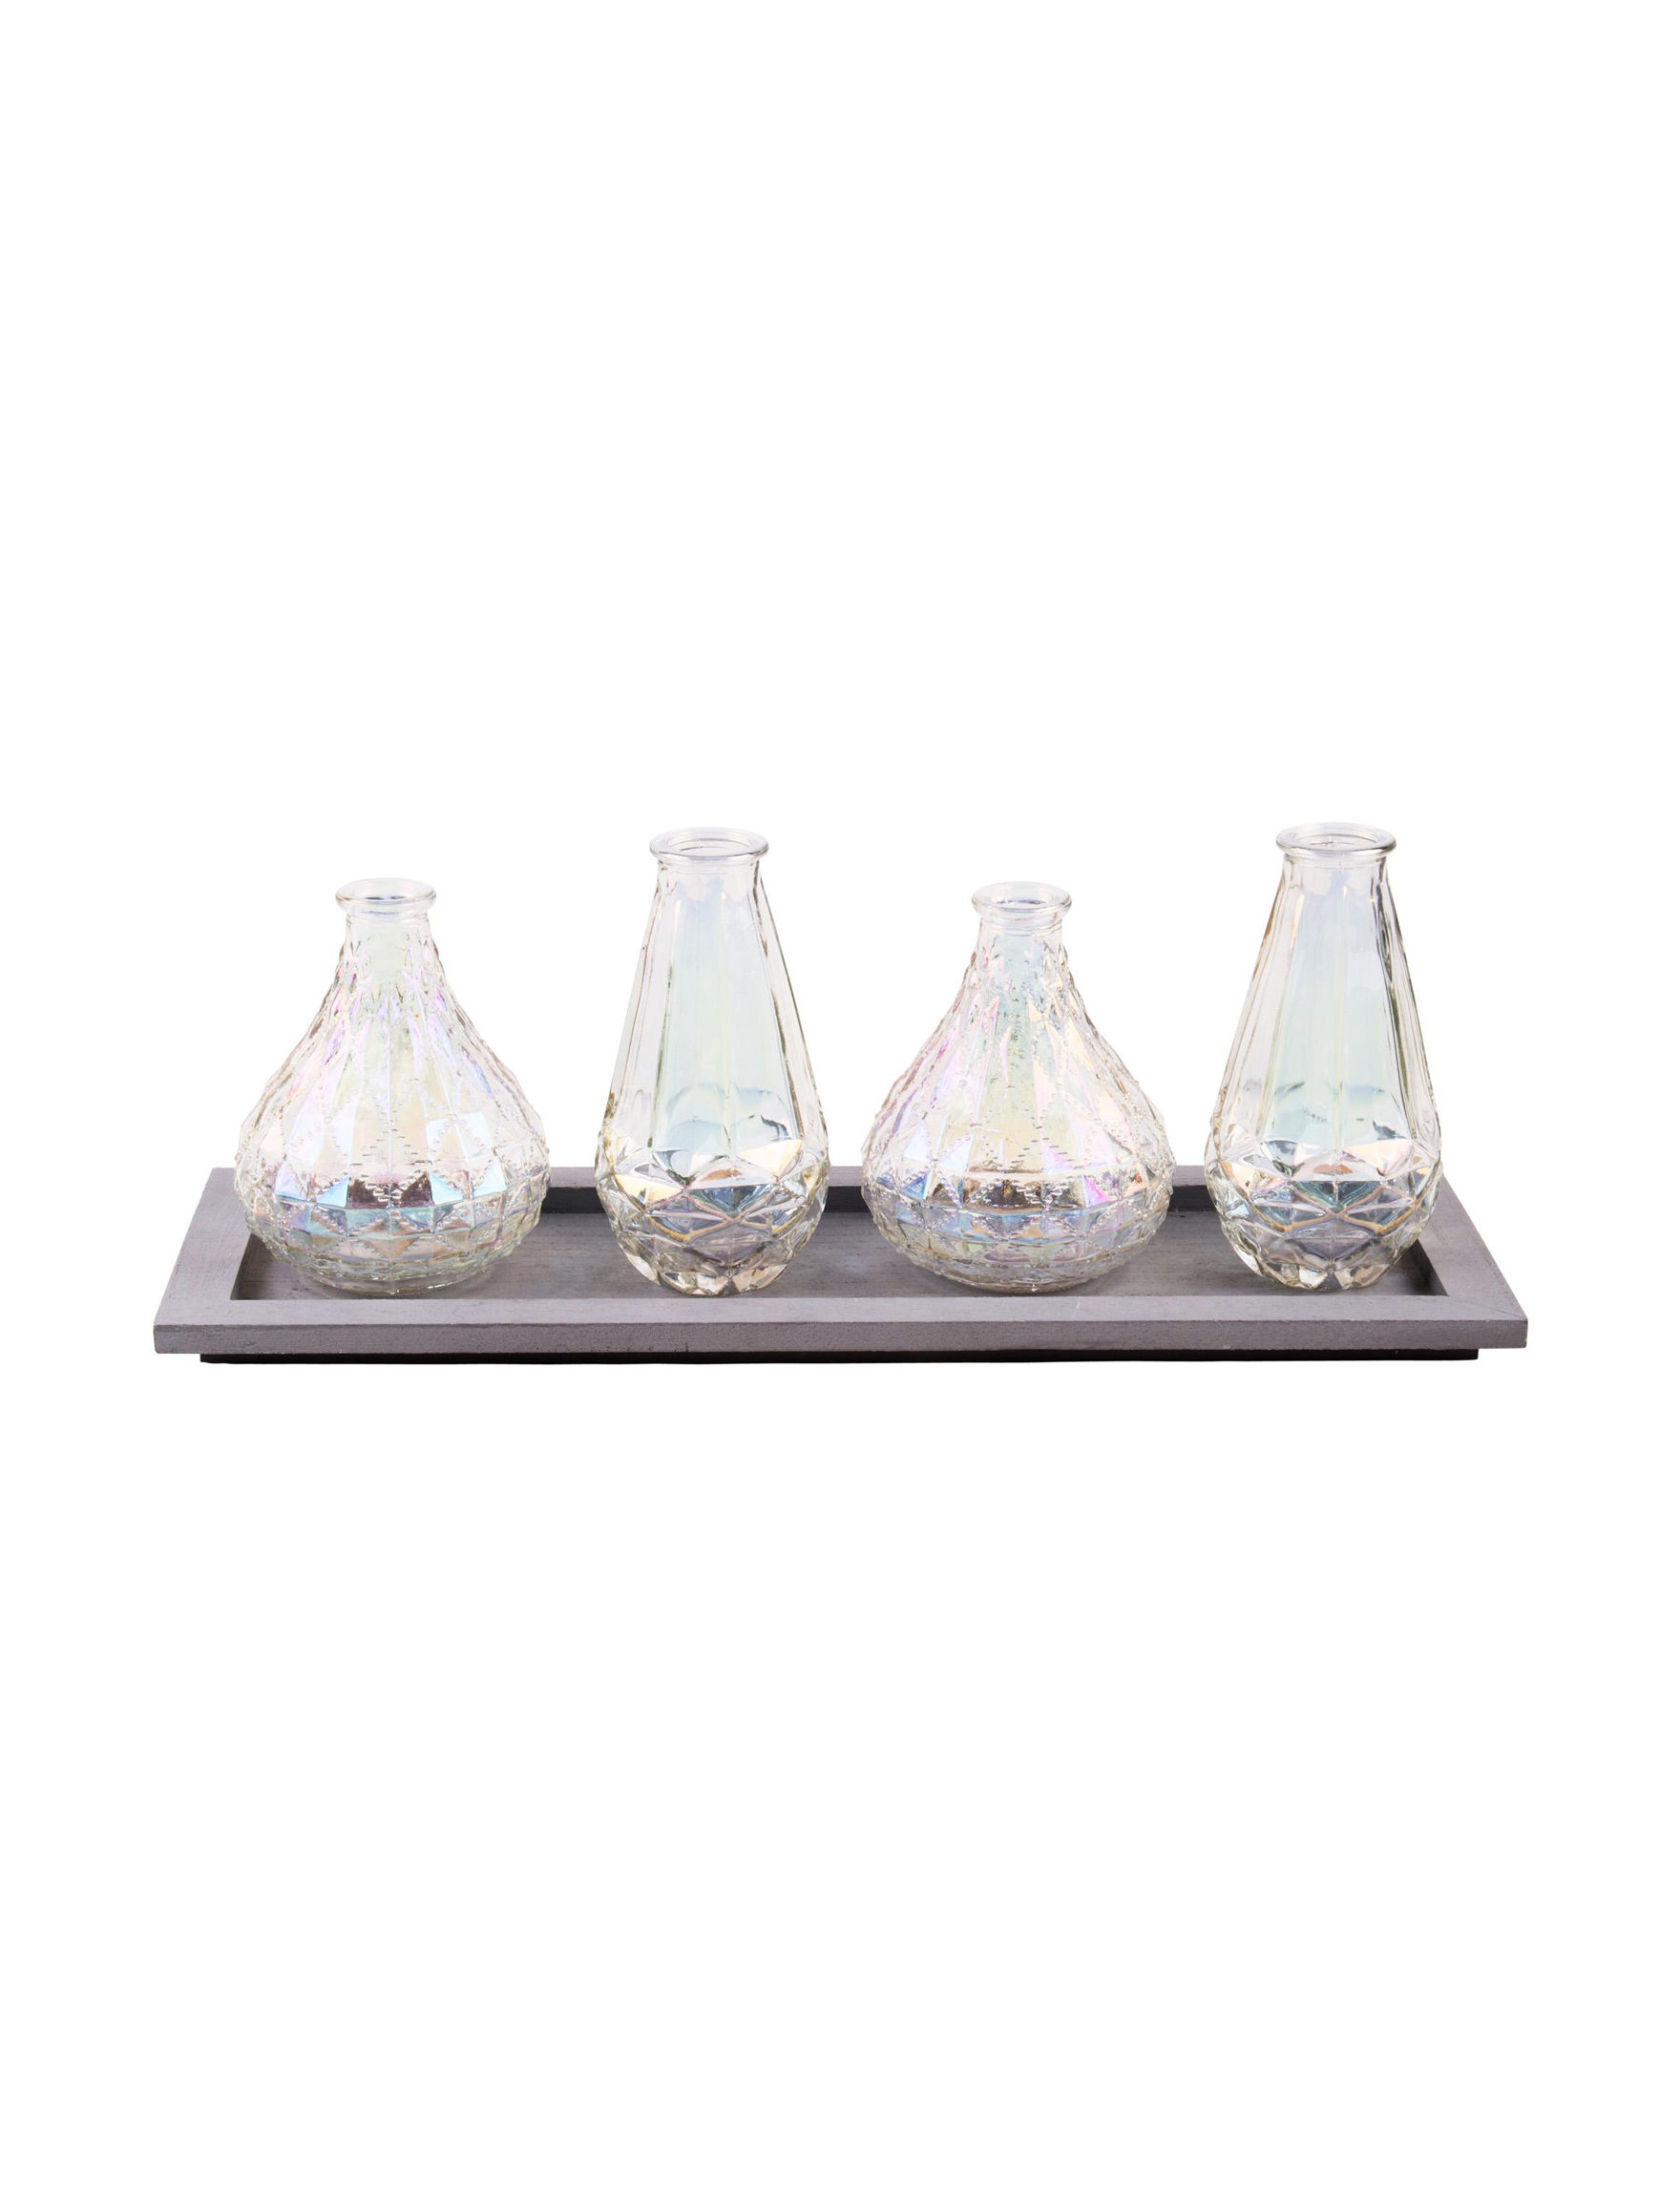 Home Essentials Iridescent Glass Decorative Objects Home Accents